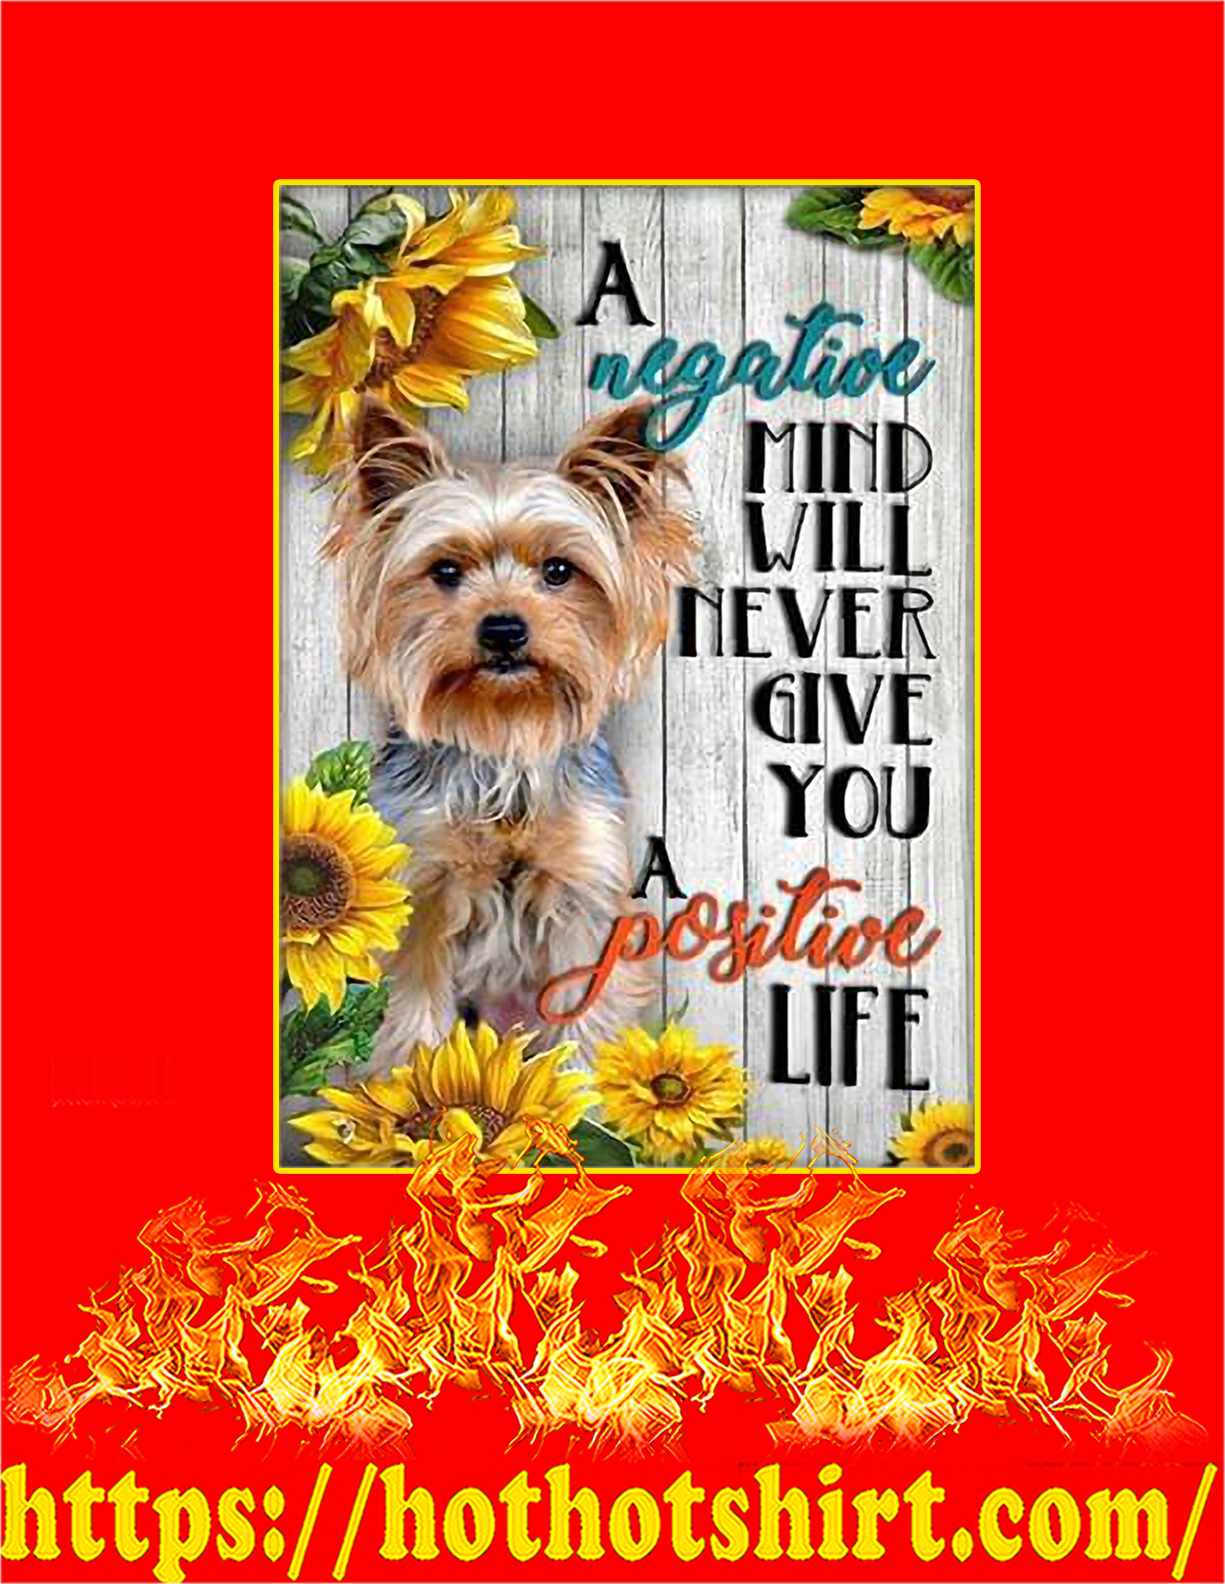 Yorkshire A negative mind will never give you a positive life poster - A3